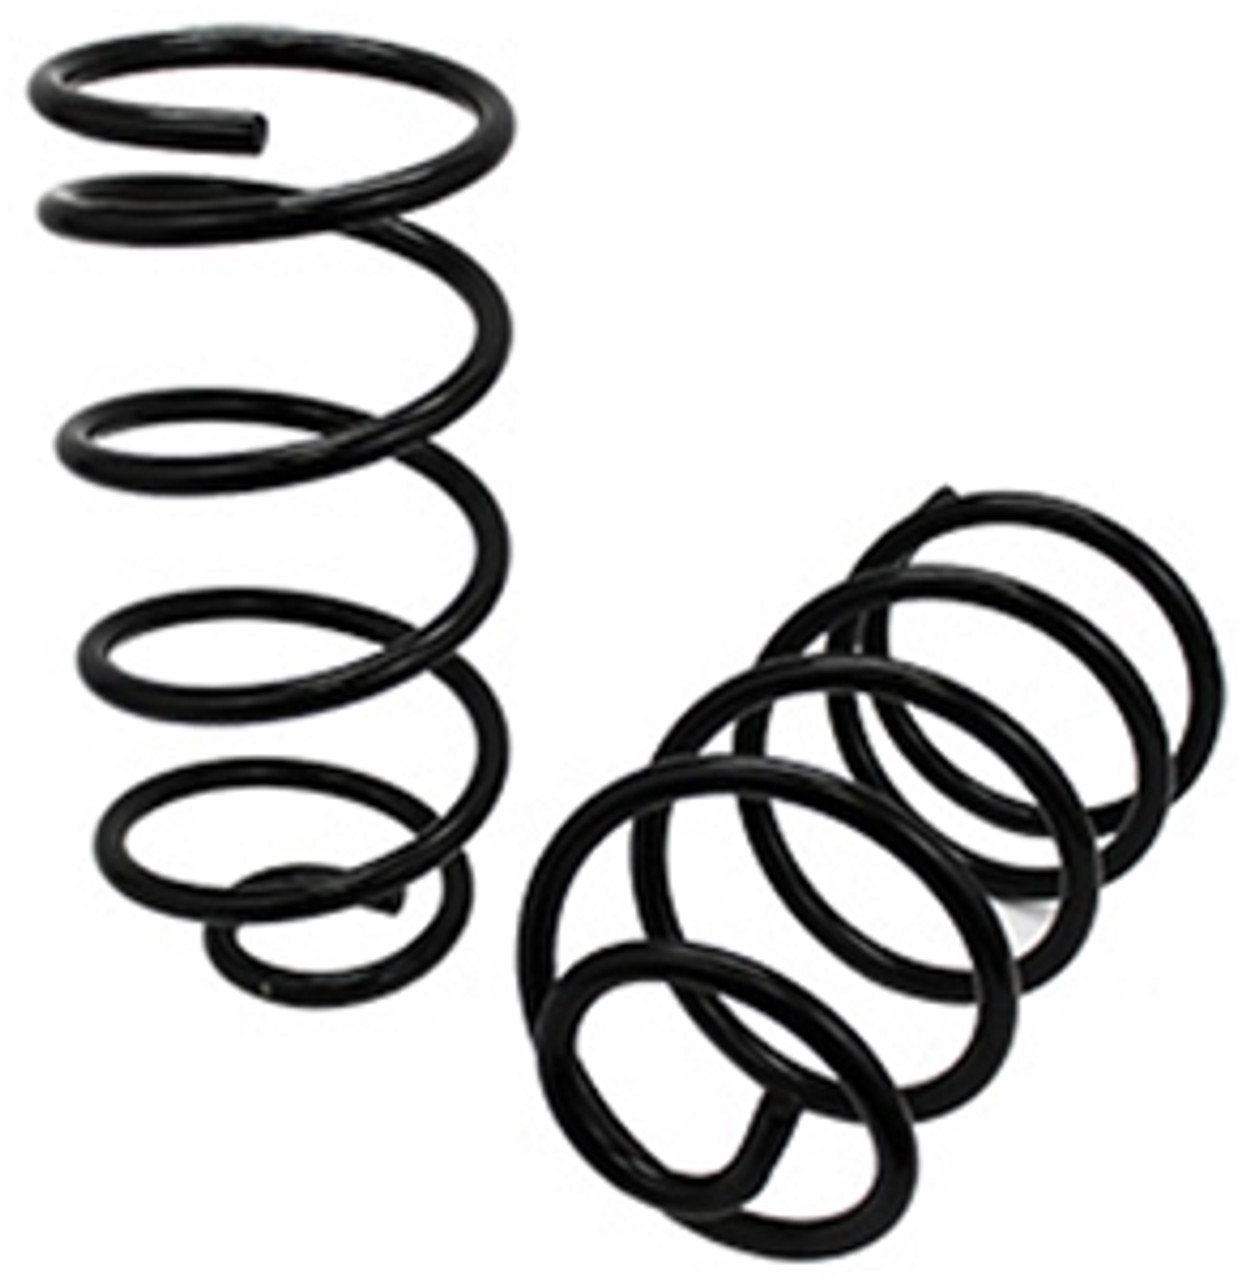 1965-66 Rear Coil Springs - All with Heavy Duty